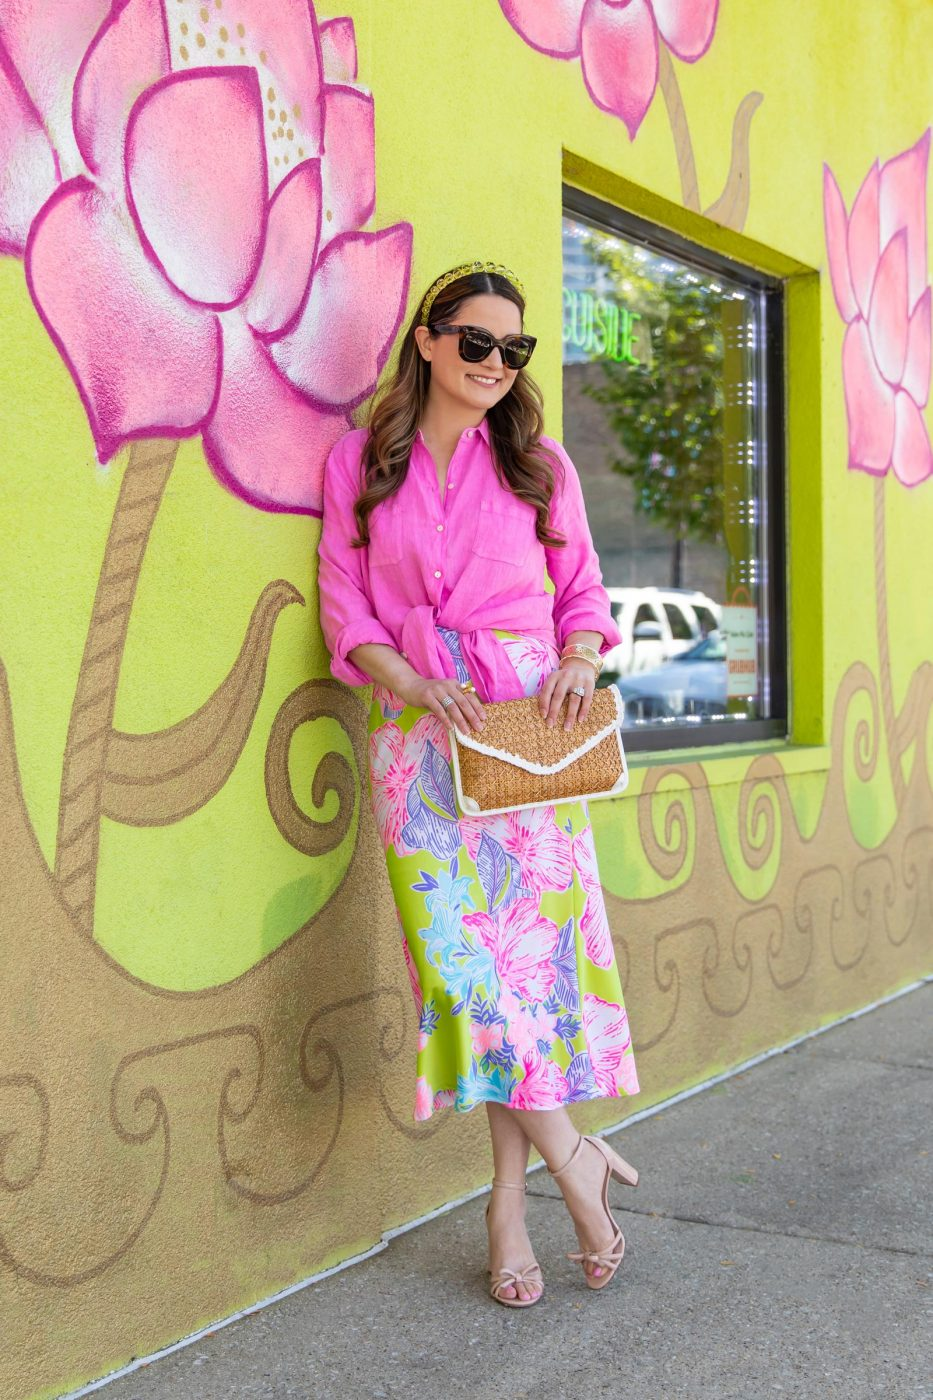 lilly pulitzer matcha green outfit